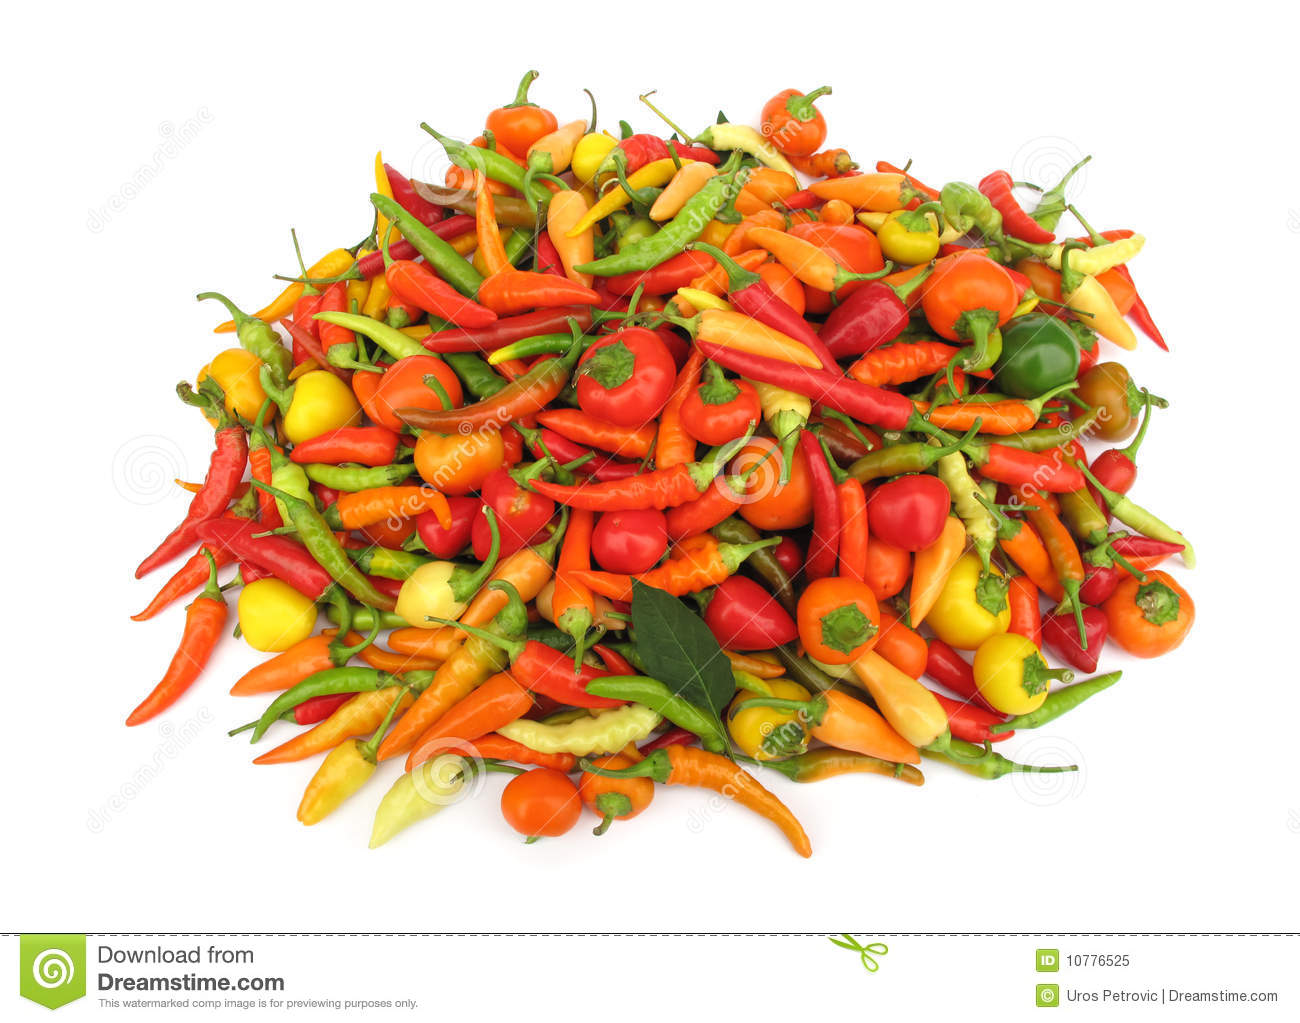 Chili peppers paprika in red dish